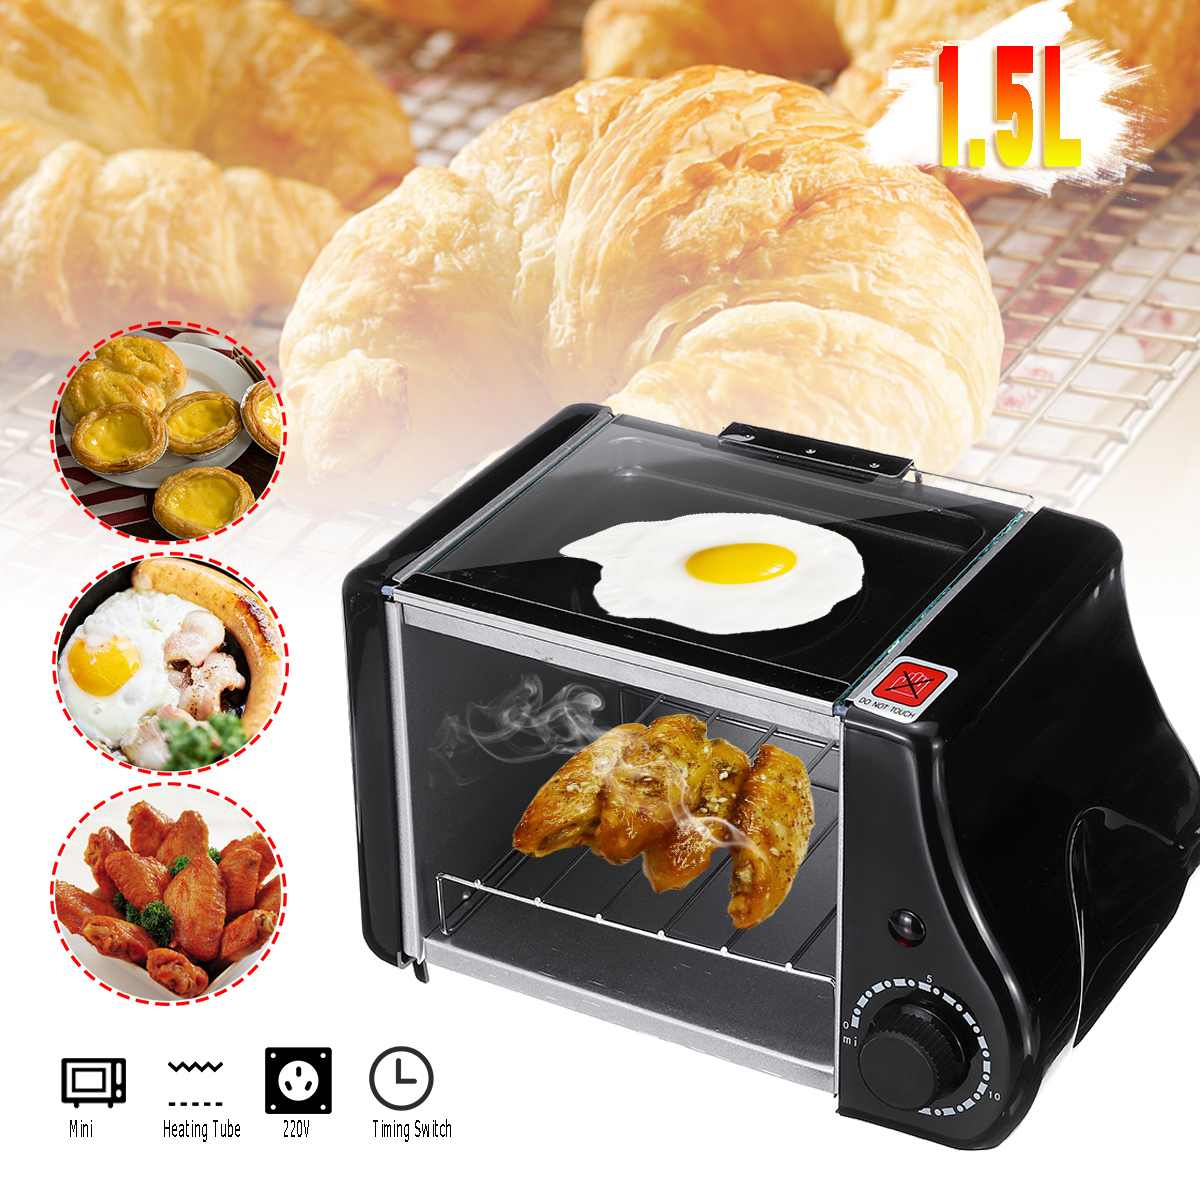 220 v/220W 2pcs Baking Pan 1.5L Mini Toaster Bread Electric Oven Baking Frying Pan Eggs Omelette Kitchen Pizzas Bread Fries Cake220 v/220W 2pcs Baking Pan 1.5L Mini Toaster Bread Electric Oven Baking Frying Pan Eggs Omelette Kitchen Pizzas Bread Fries Cake